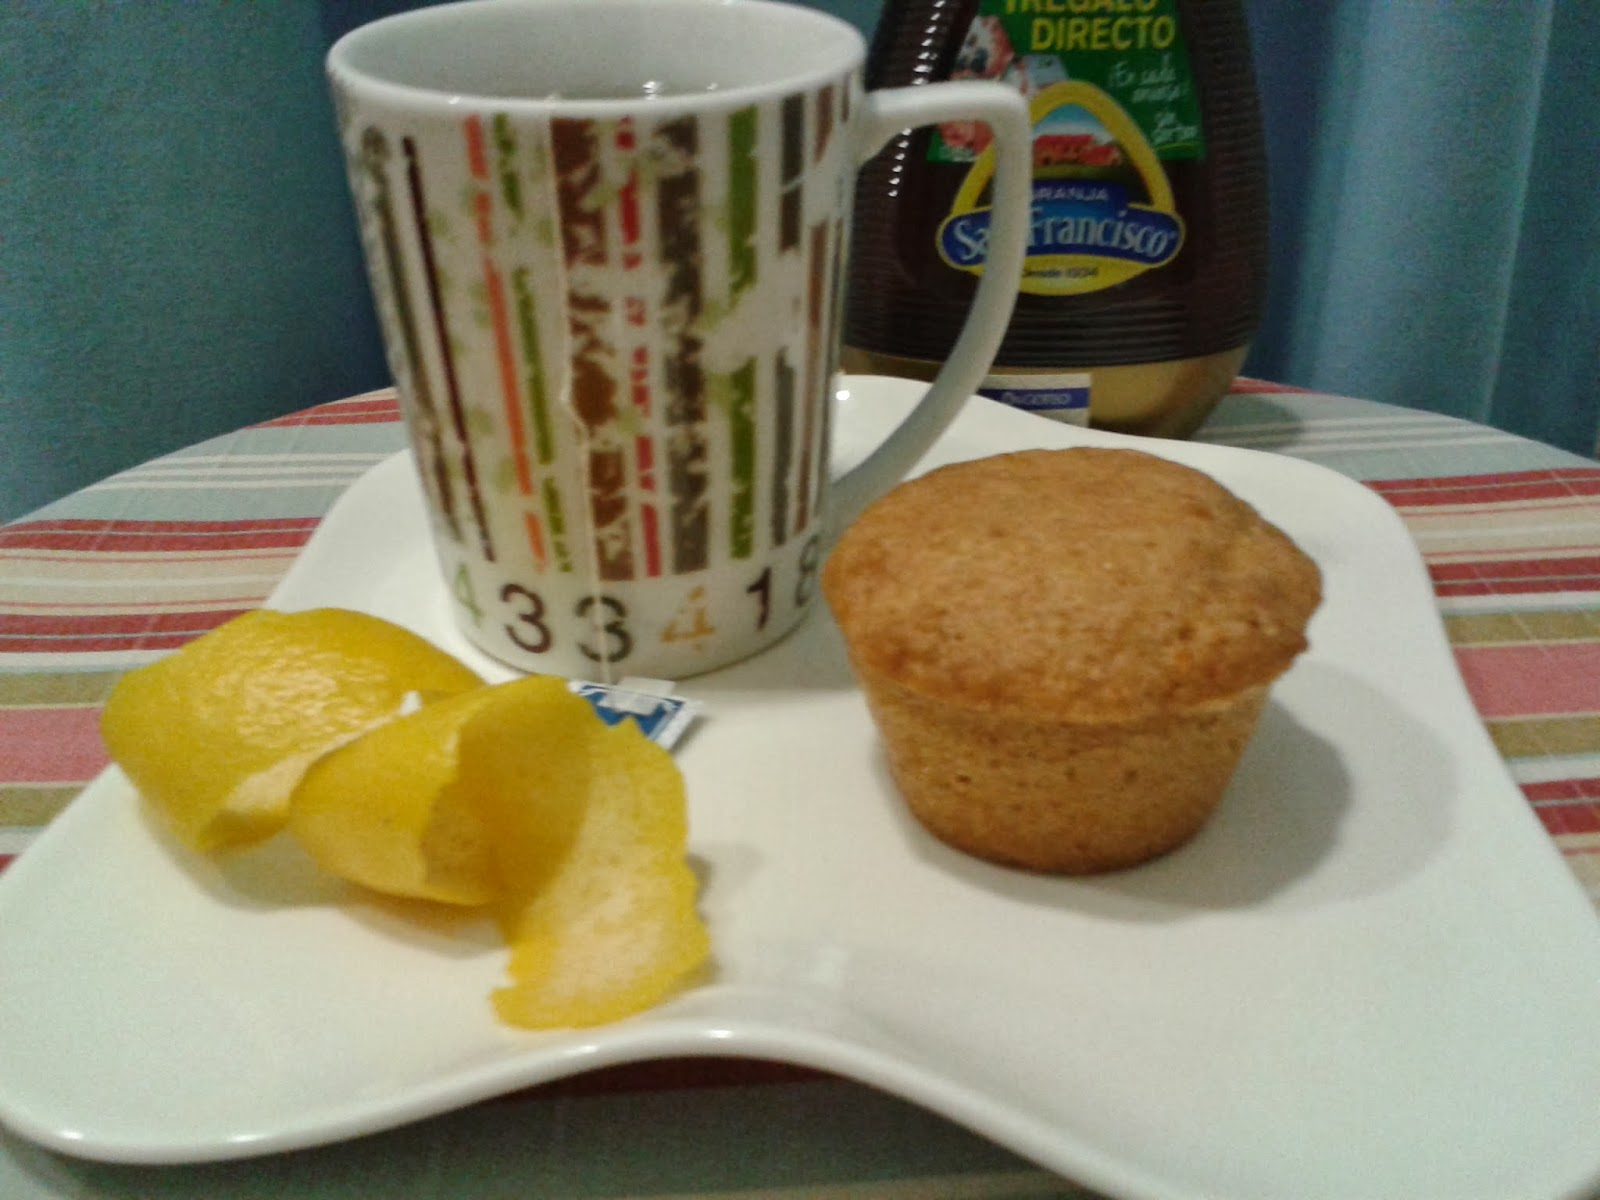 muffin de queso fresco y limon